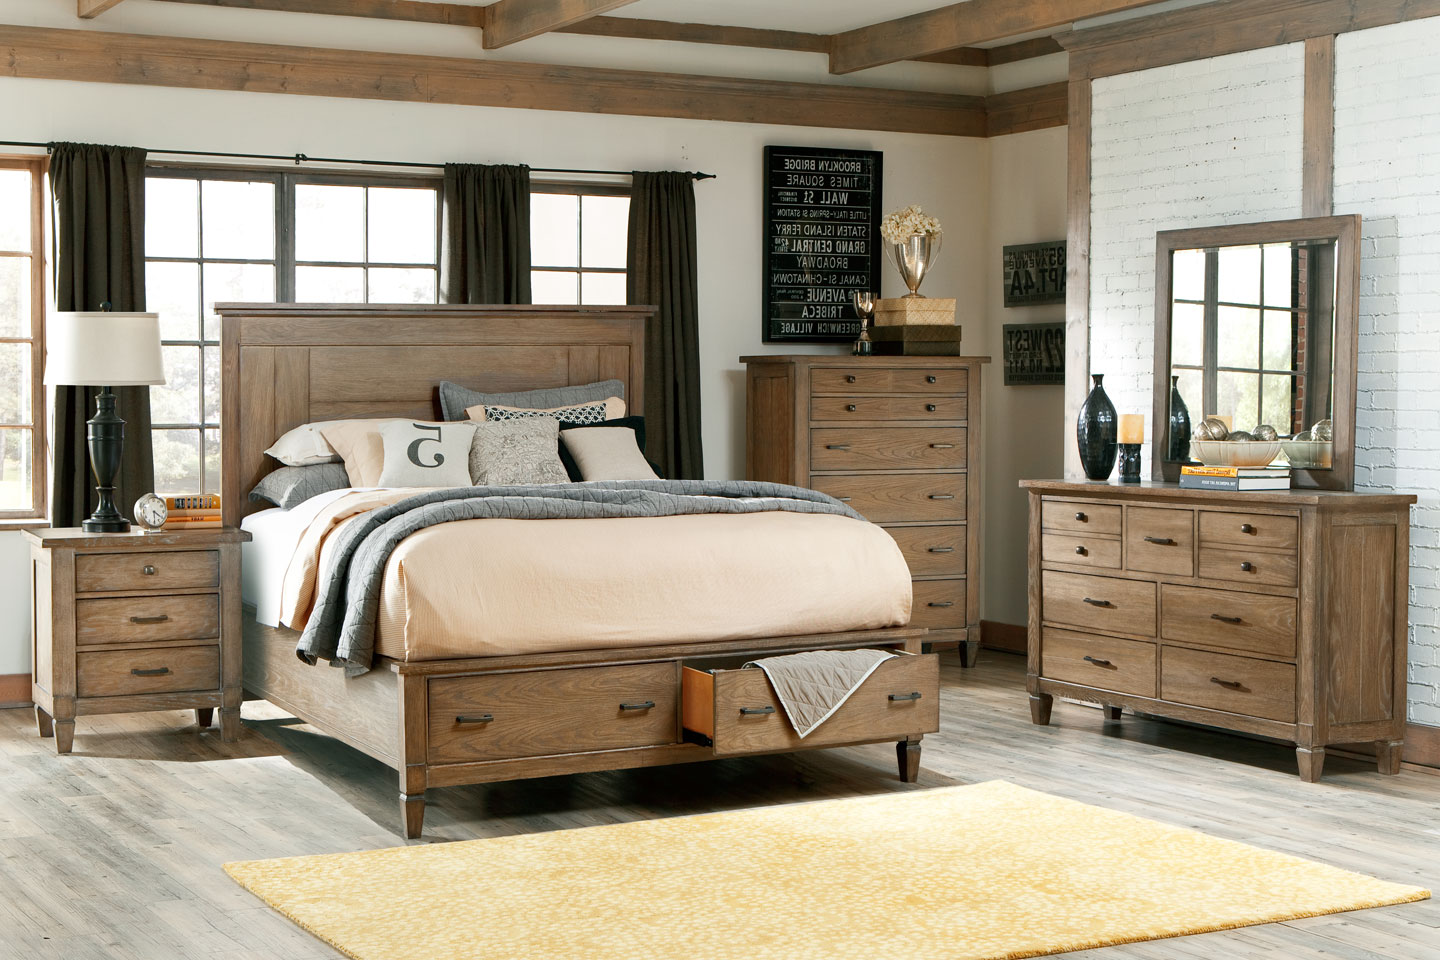 gavin wood bedroom furniture collection wood bedroom bedroom with ikea furniture trend home design and decor